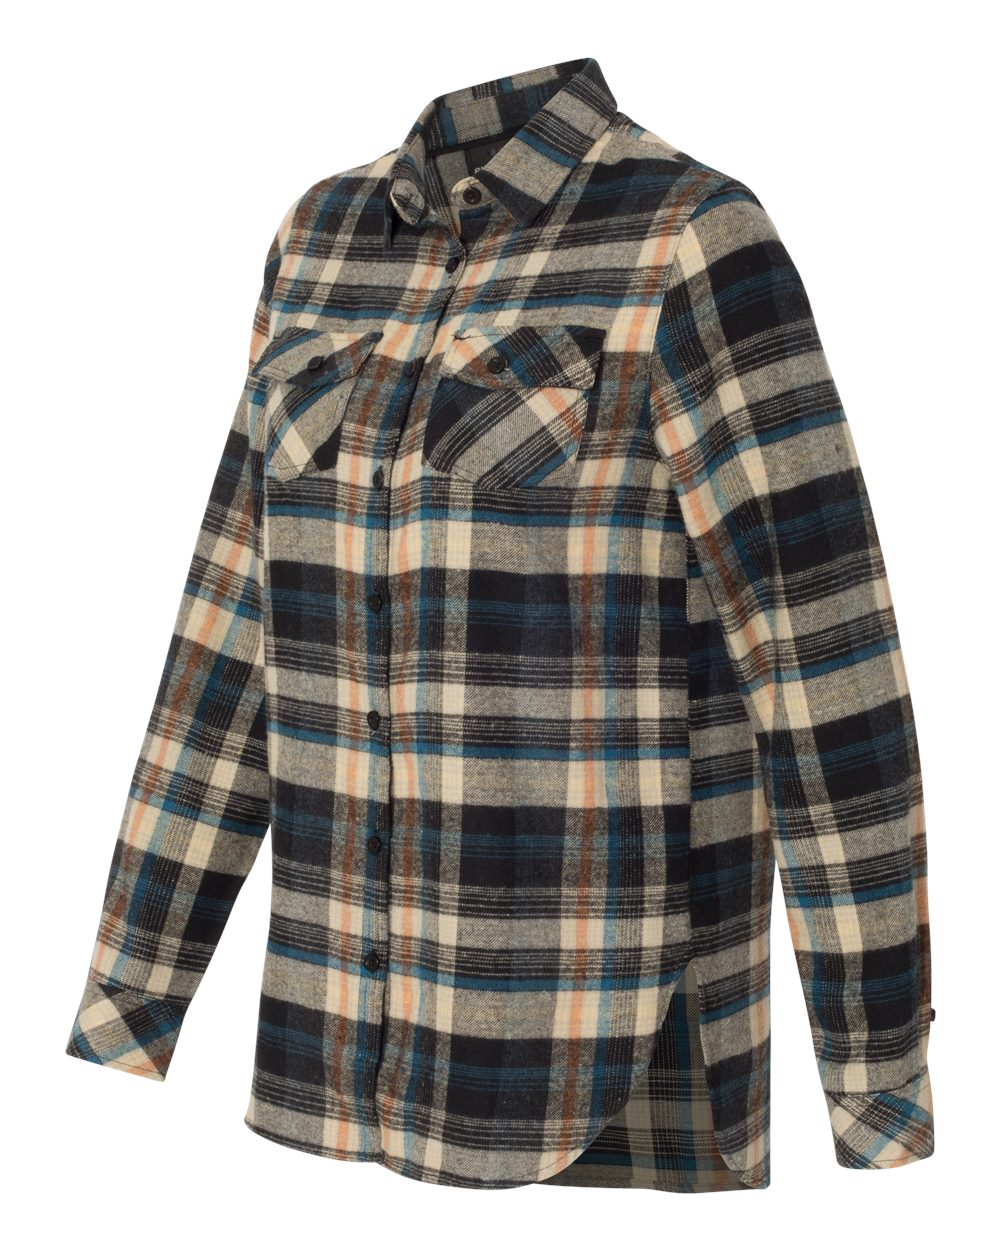 Burnside 5210 - Women's Yarn-Dyed Long Sleeve Flannel Shirt